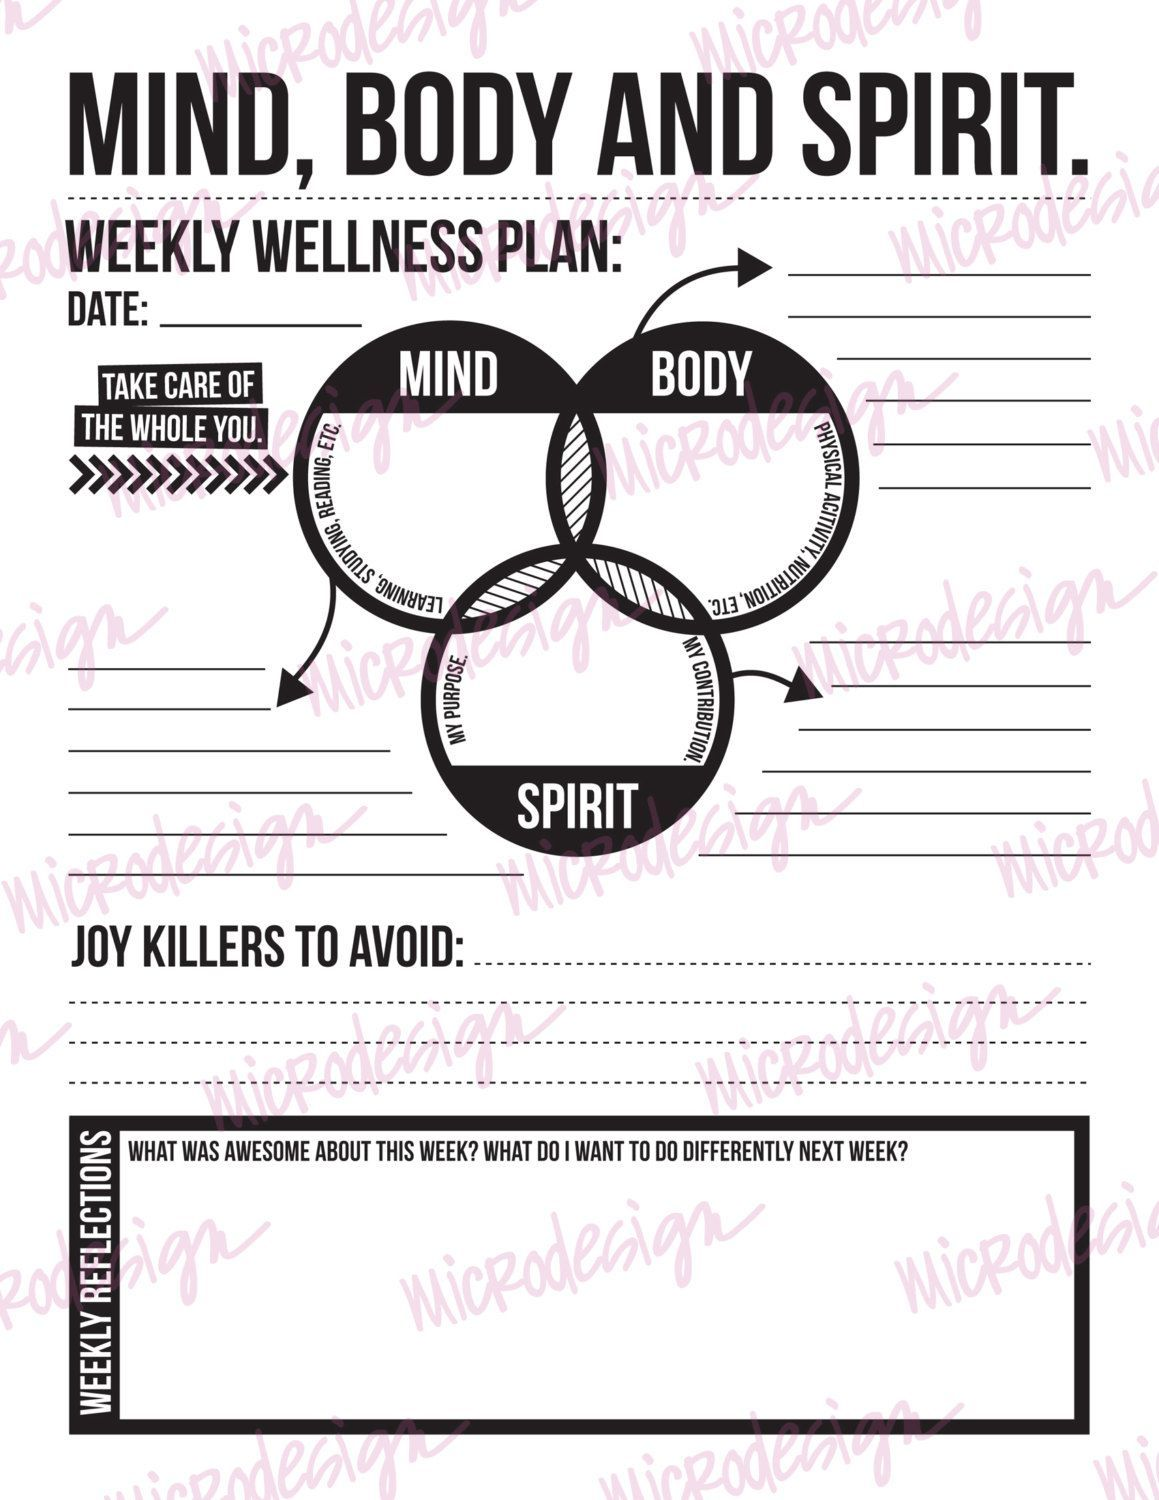 Mind Body Spirit Weekly Wellness Plan By Microdesign On